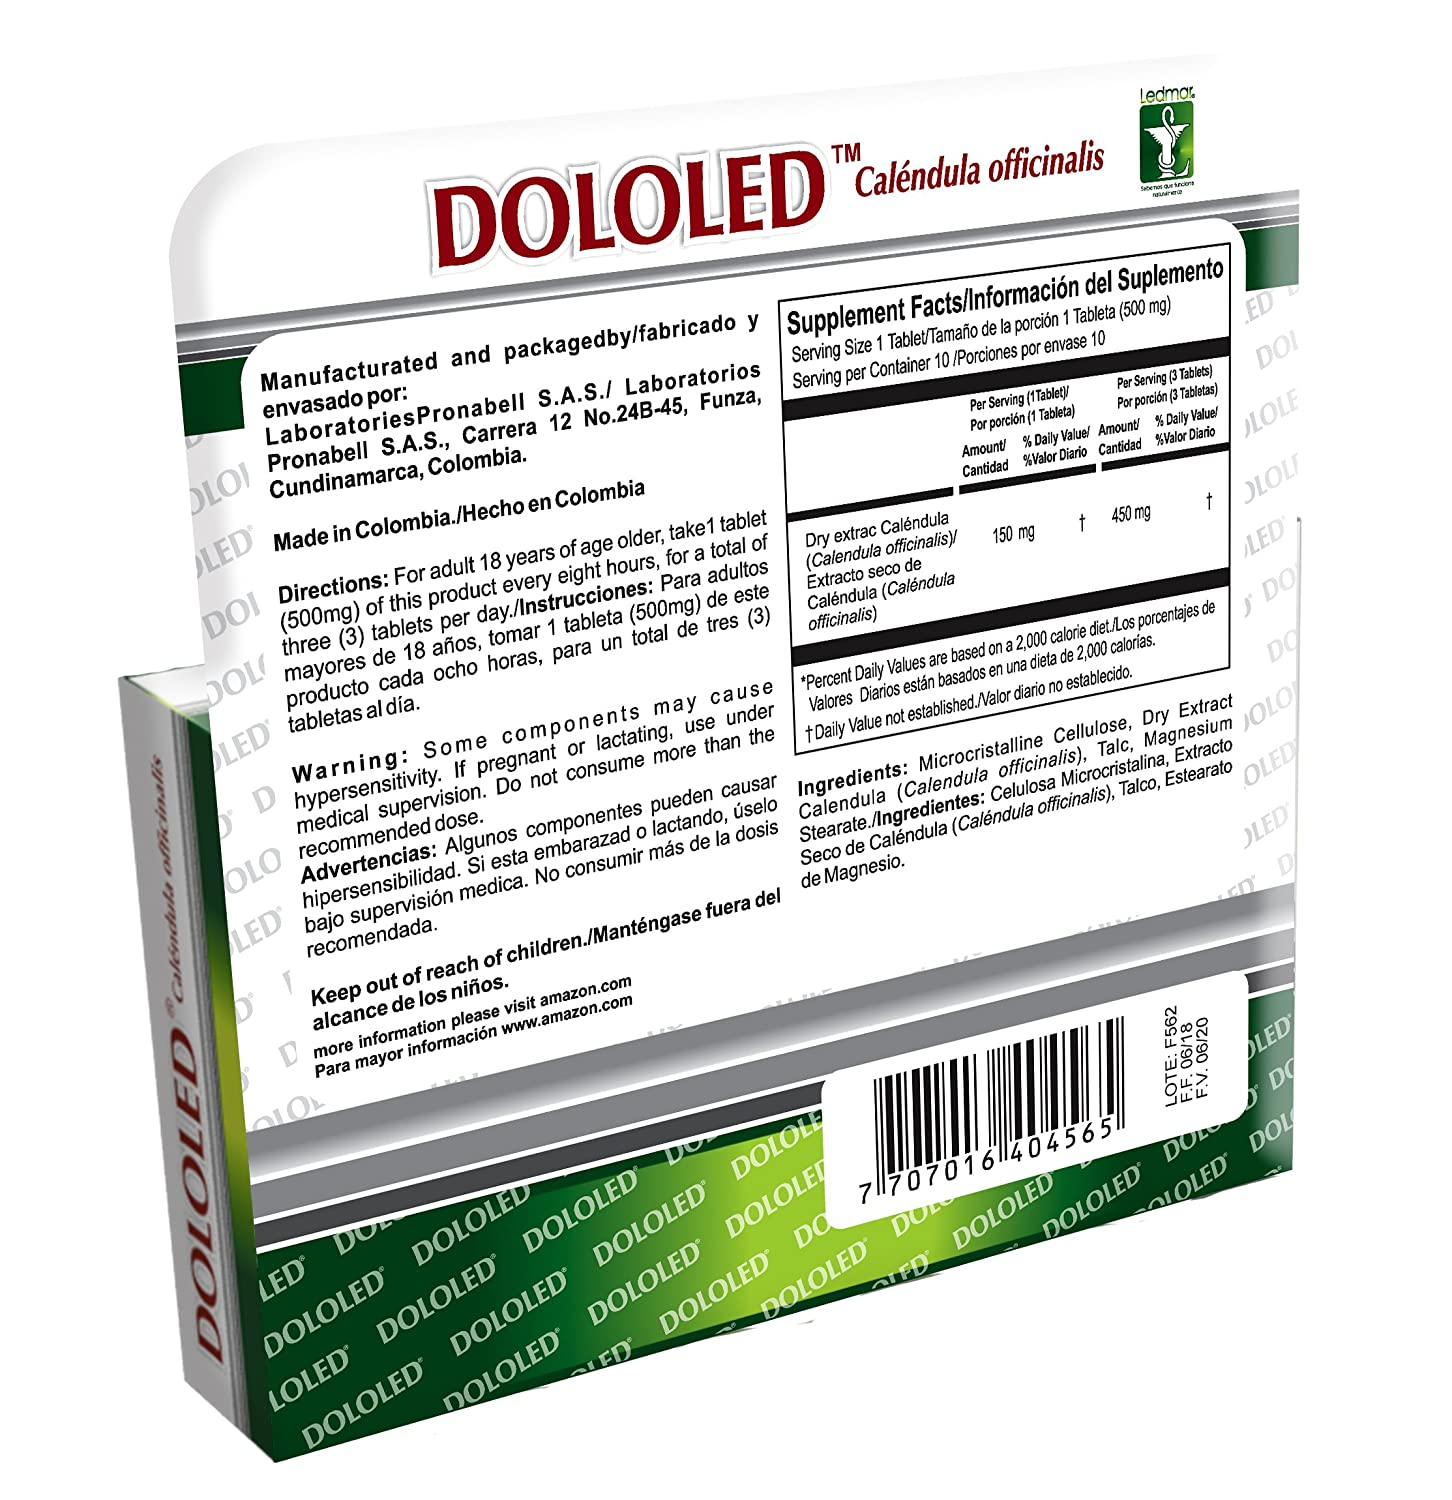 DOLOLED Calendula Officinalis 2 Pack (30 Tablets, Total 60 Tablets) 150 mg Each Tablet, for All Types of...